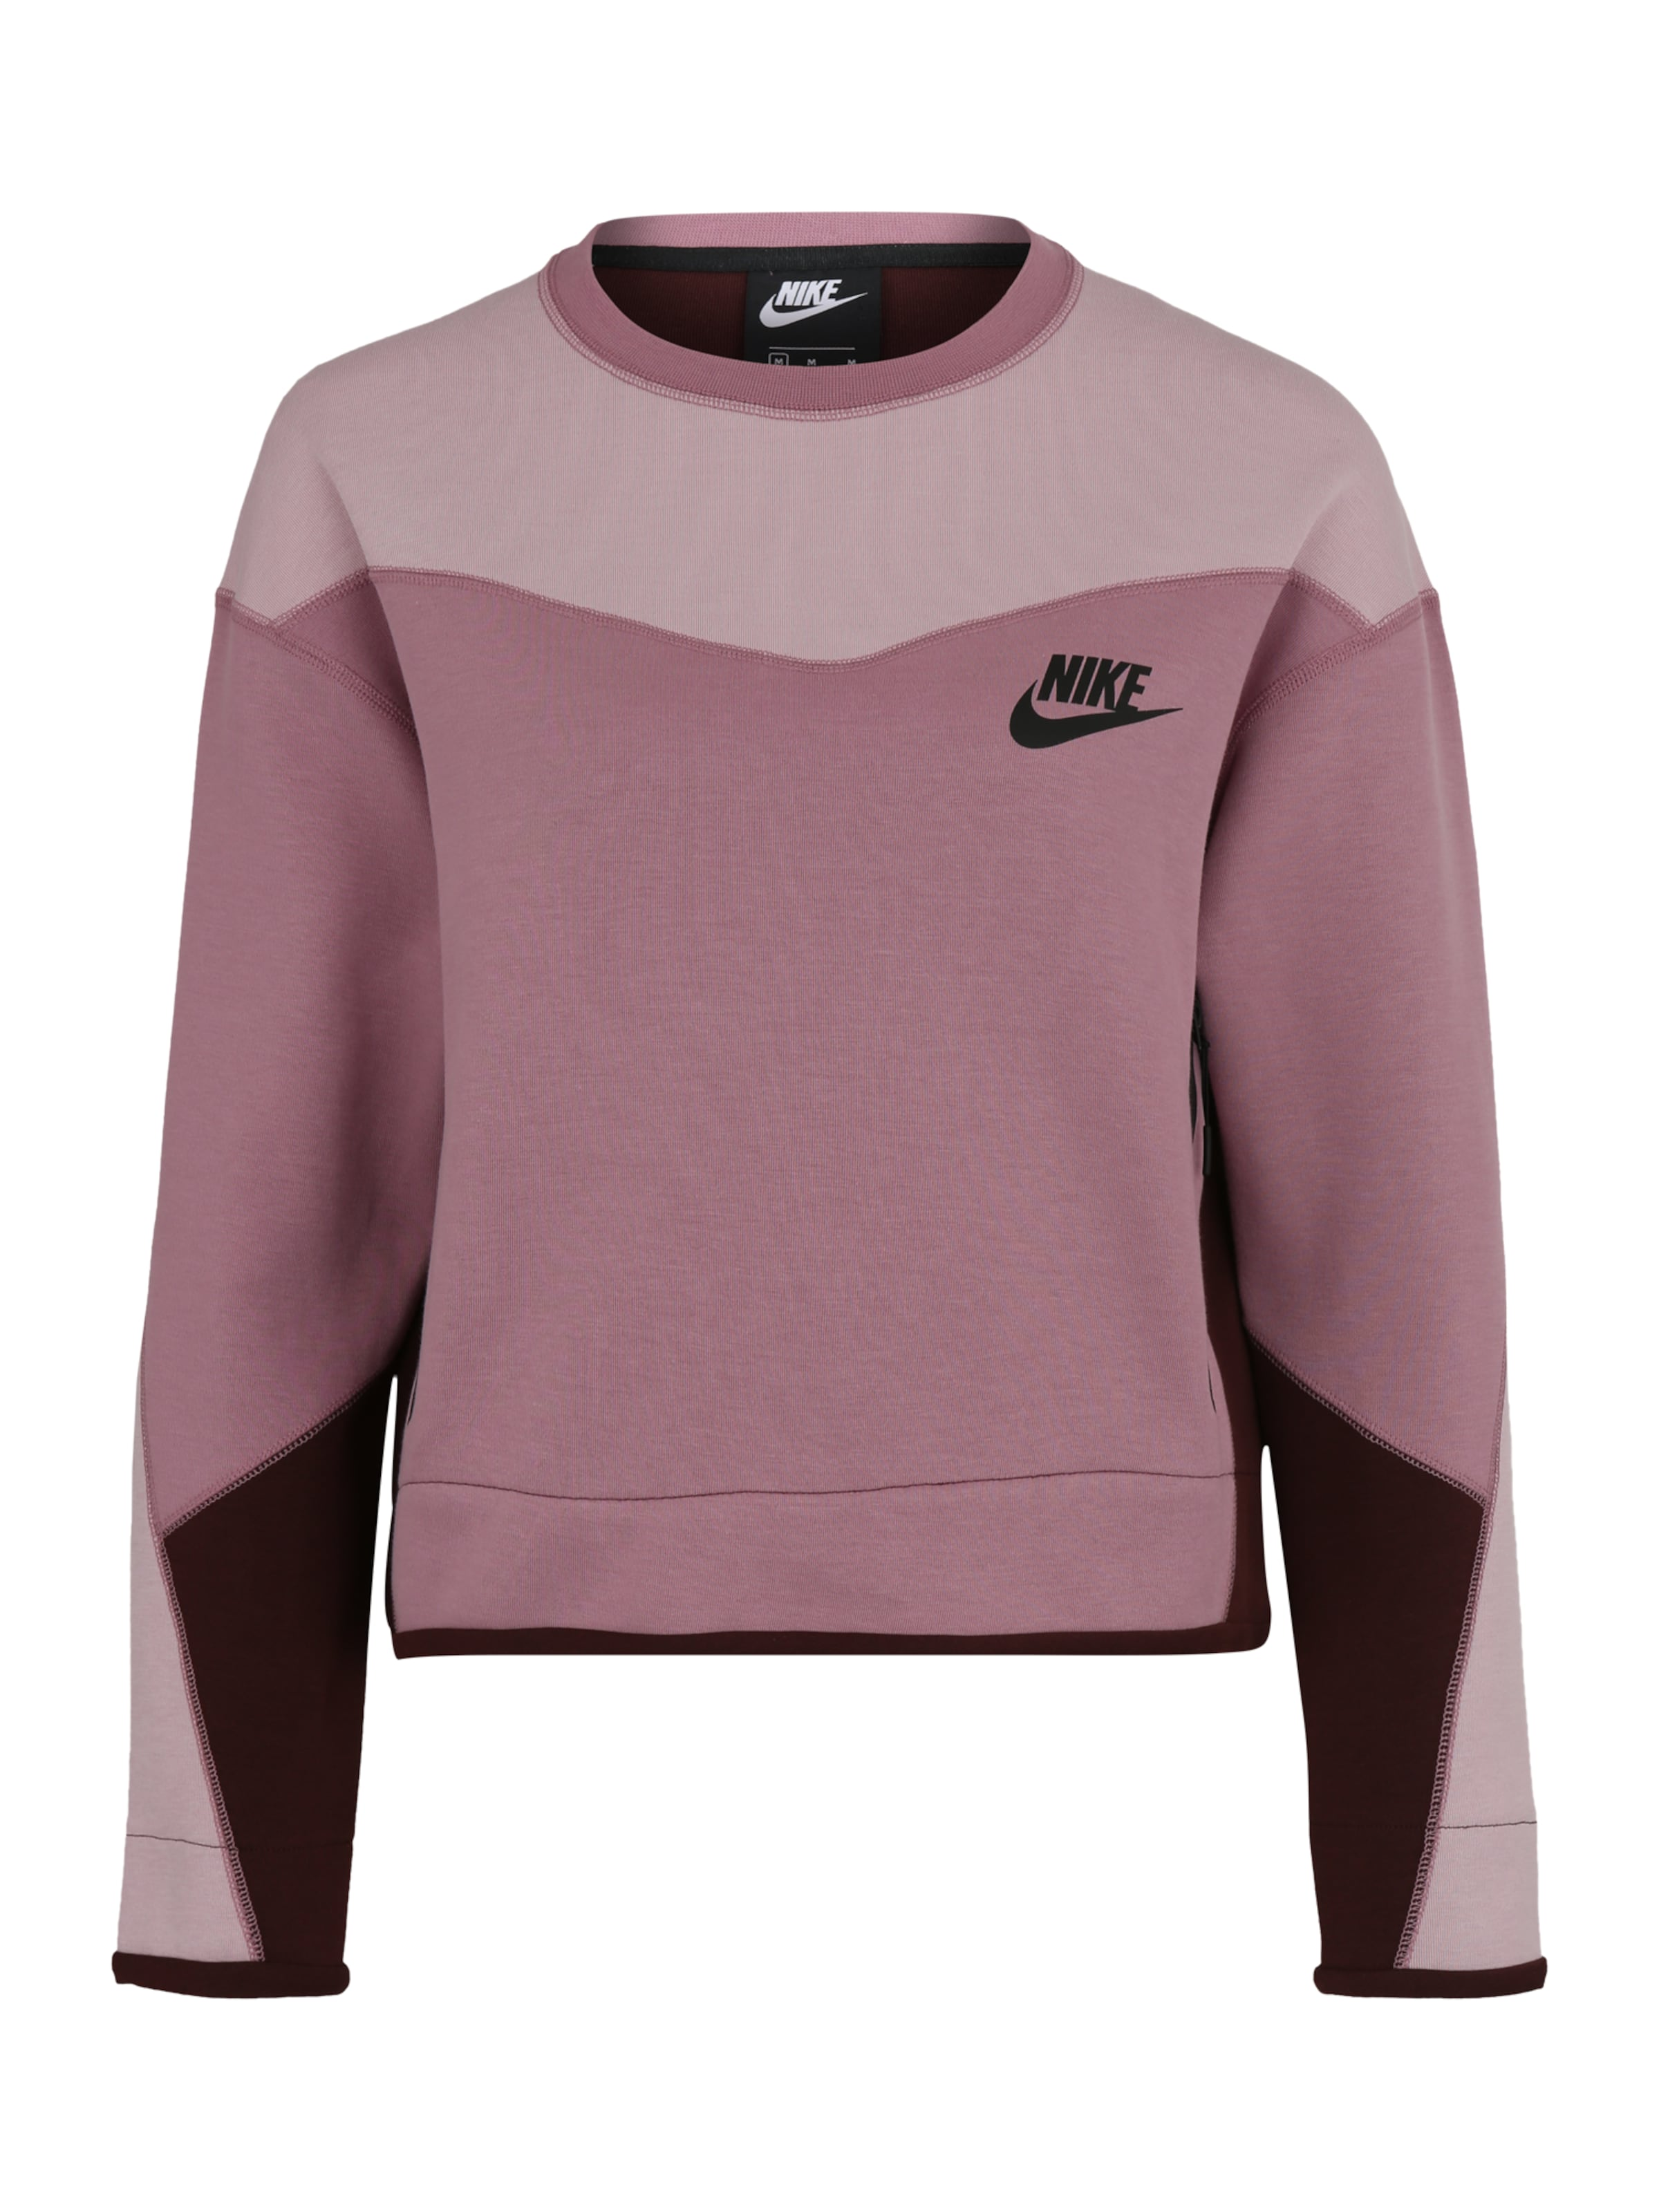 LilaFlieder In Sportswear Fleece' 'nsw Nike Beere Tech Sweatshirt dWrxeQCBo